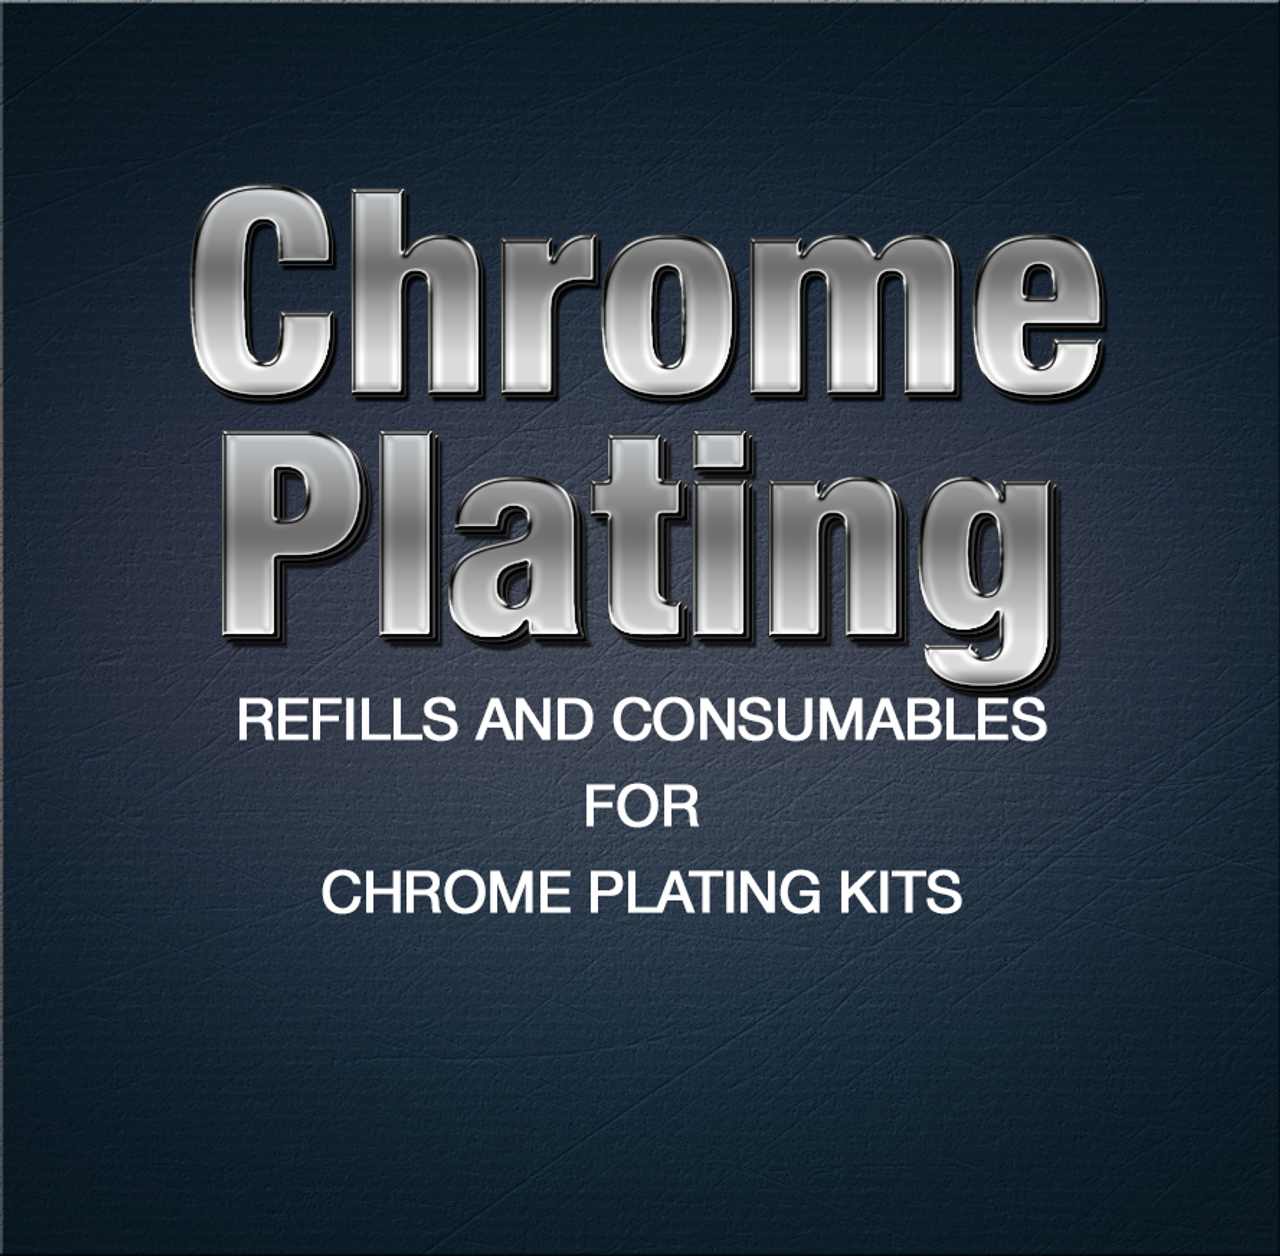 Electroplating - Kit Refills & Consumables - Chrome Plating